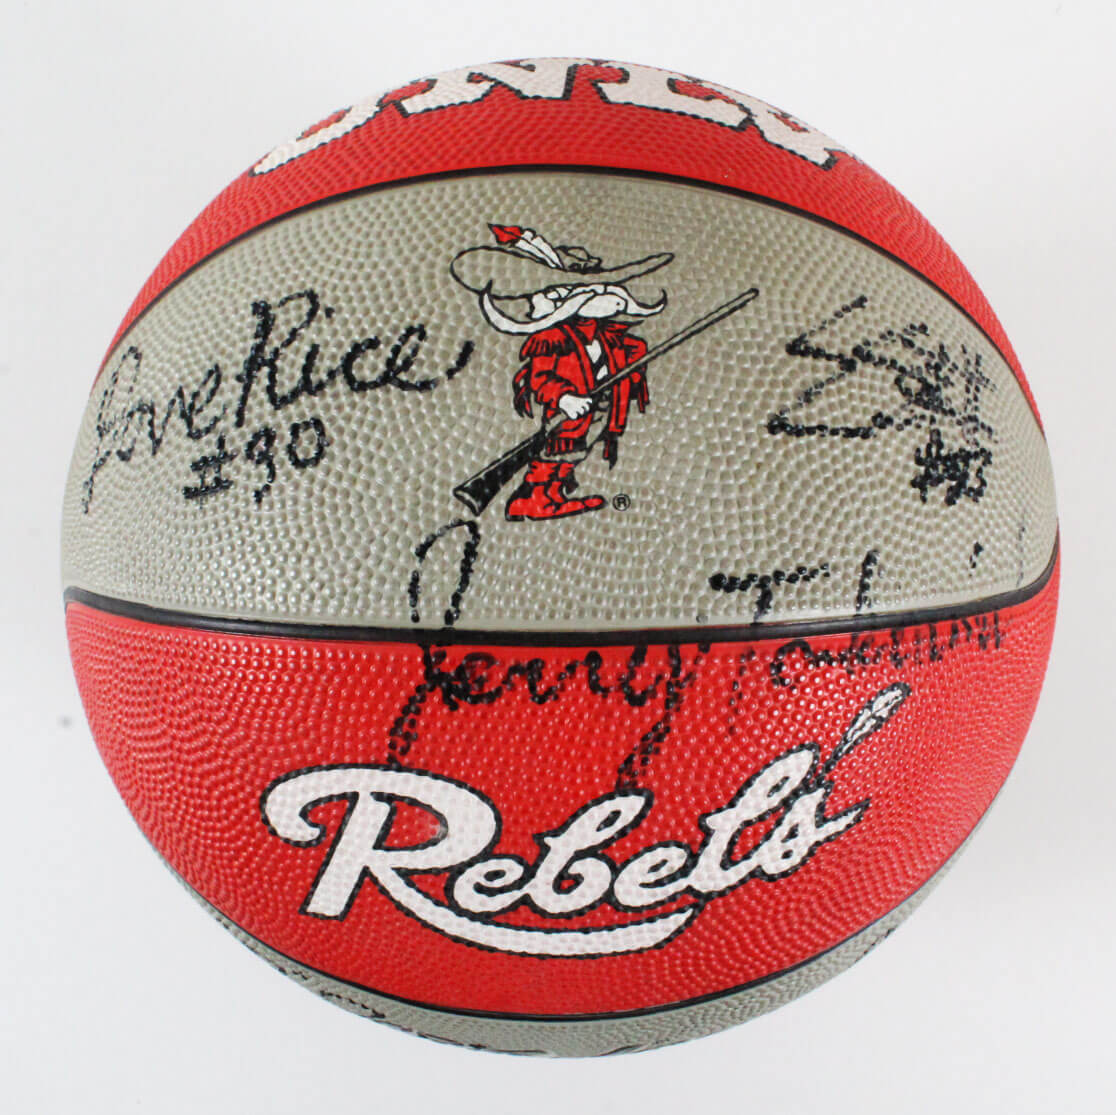 1991 UNLV Rebels Team Signed Basketball